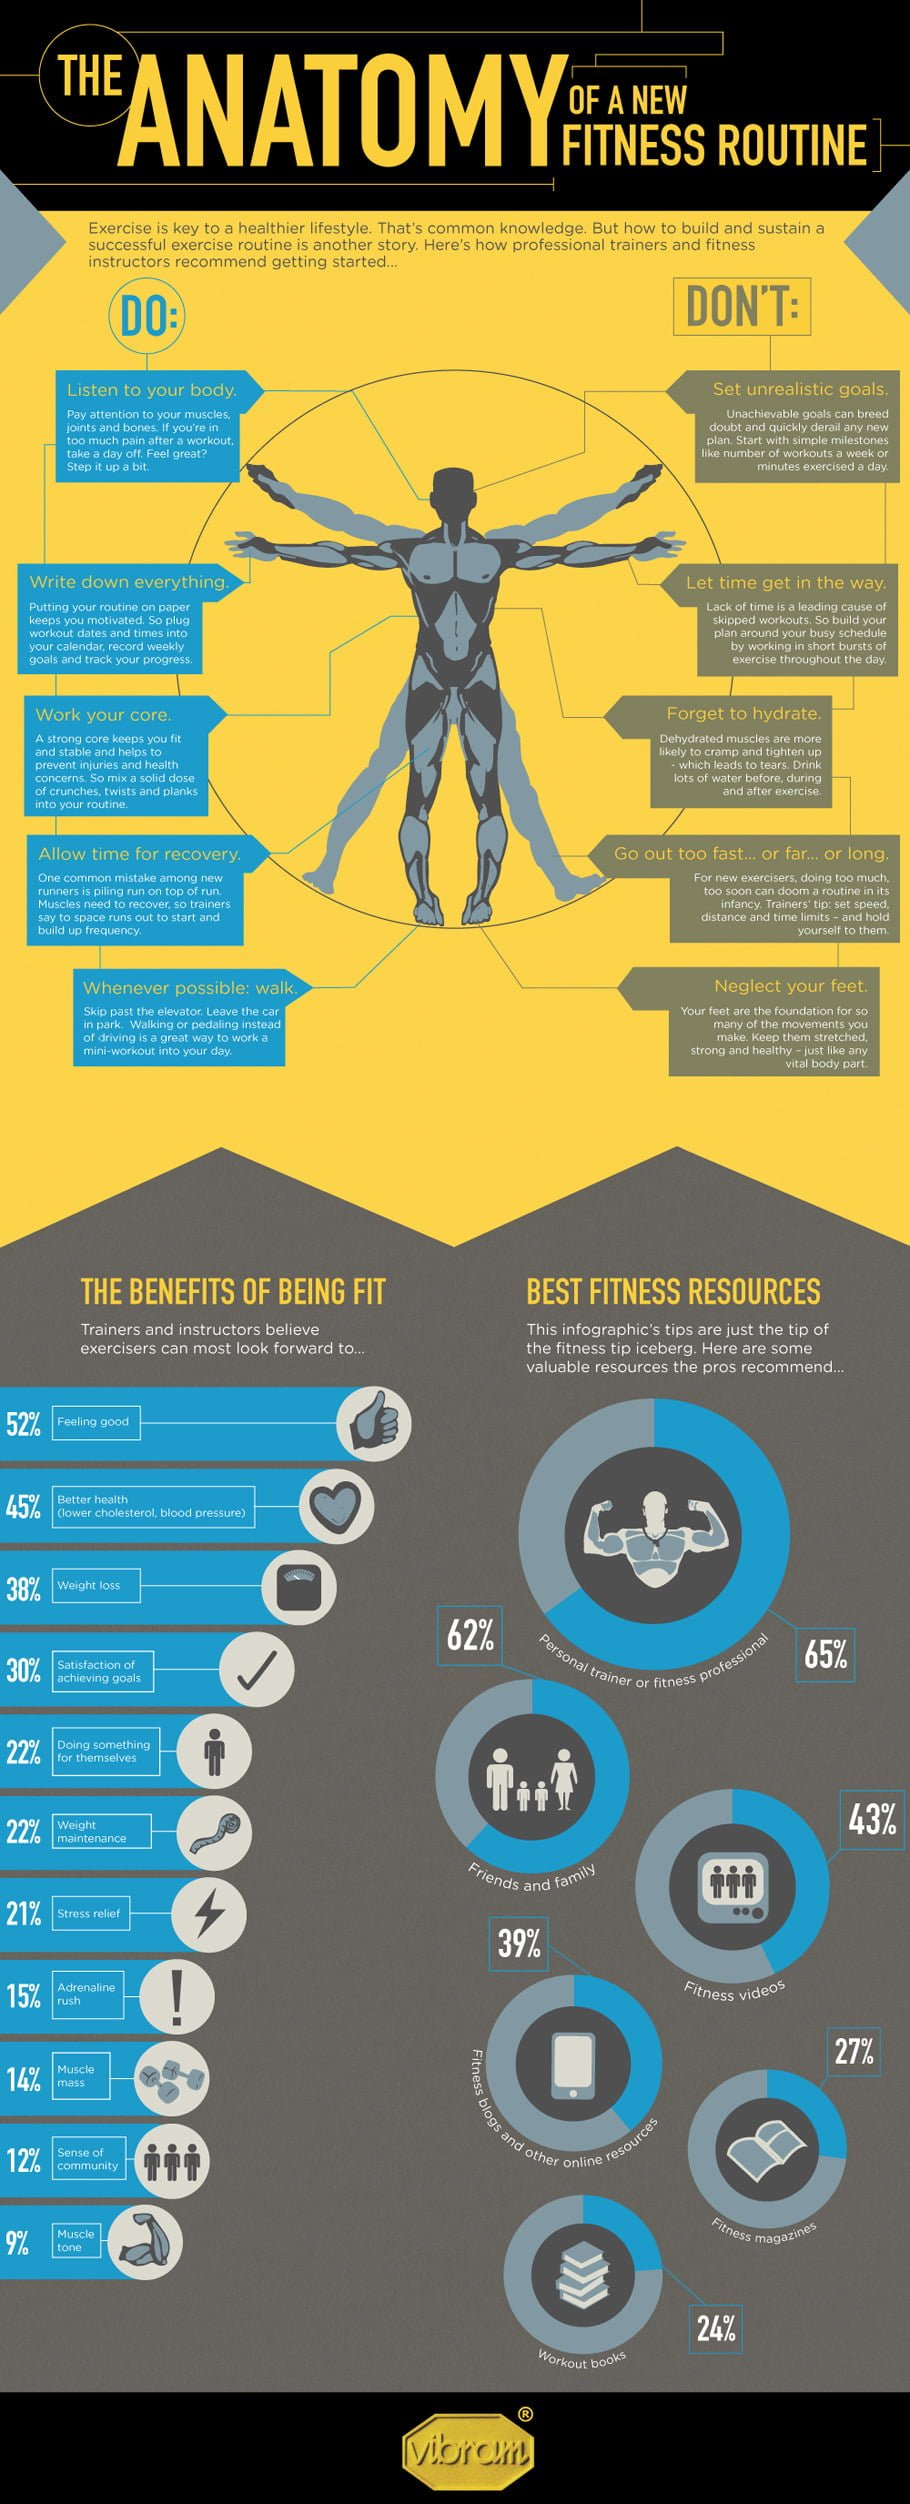 The Anatomy of A New Fitness Routine Infographic